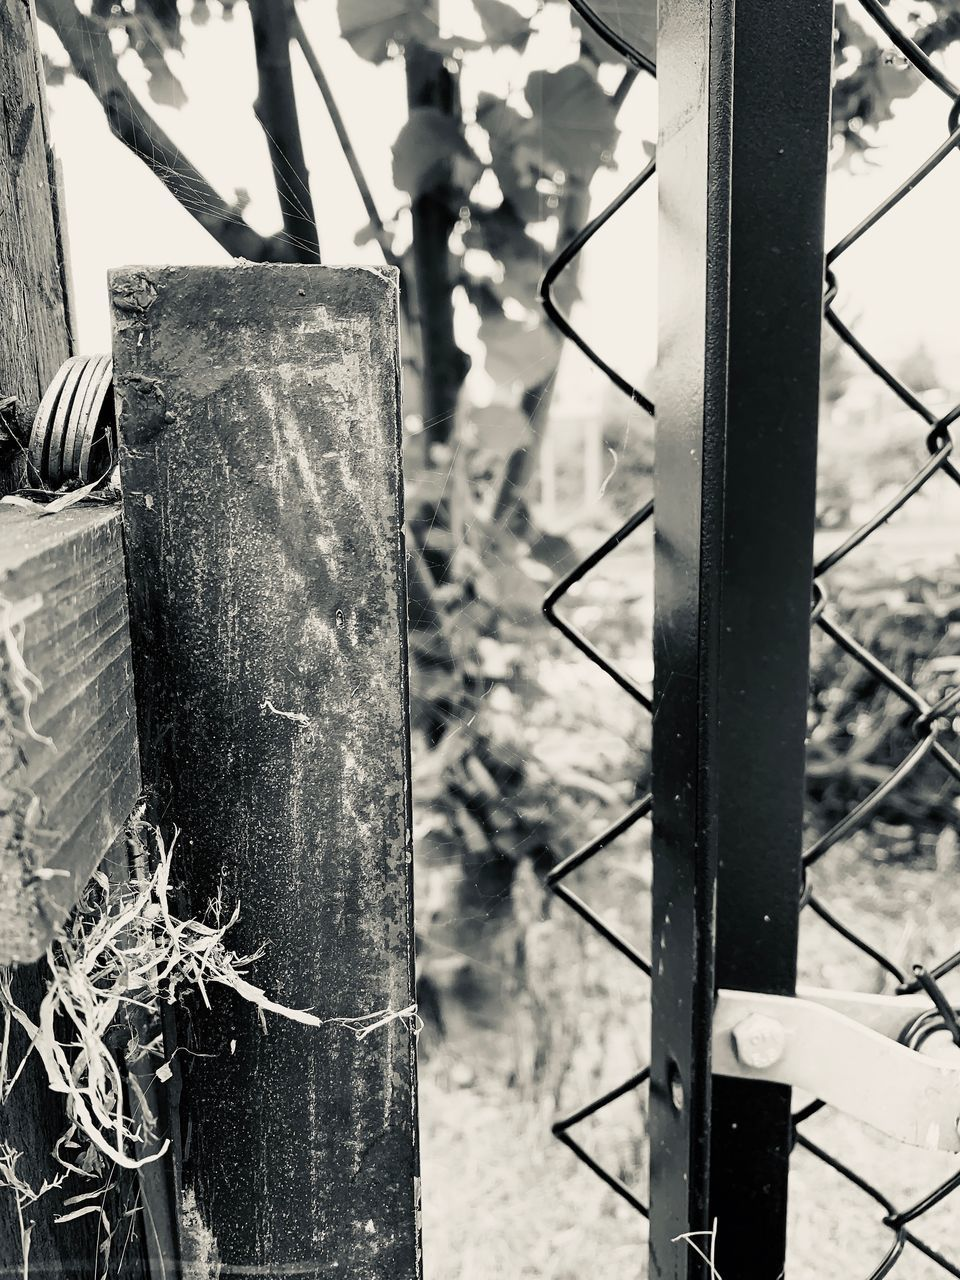 fence, barrier, boundary, no people, focus on foreground, day, metal, close-up, nature, plant, safety, outdoors, pole, security, protection, old, growth, the past, history, post, wooden post, wheel